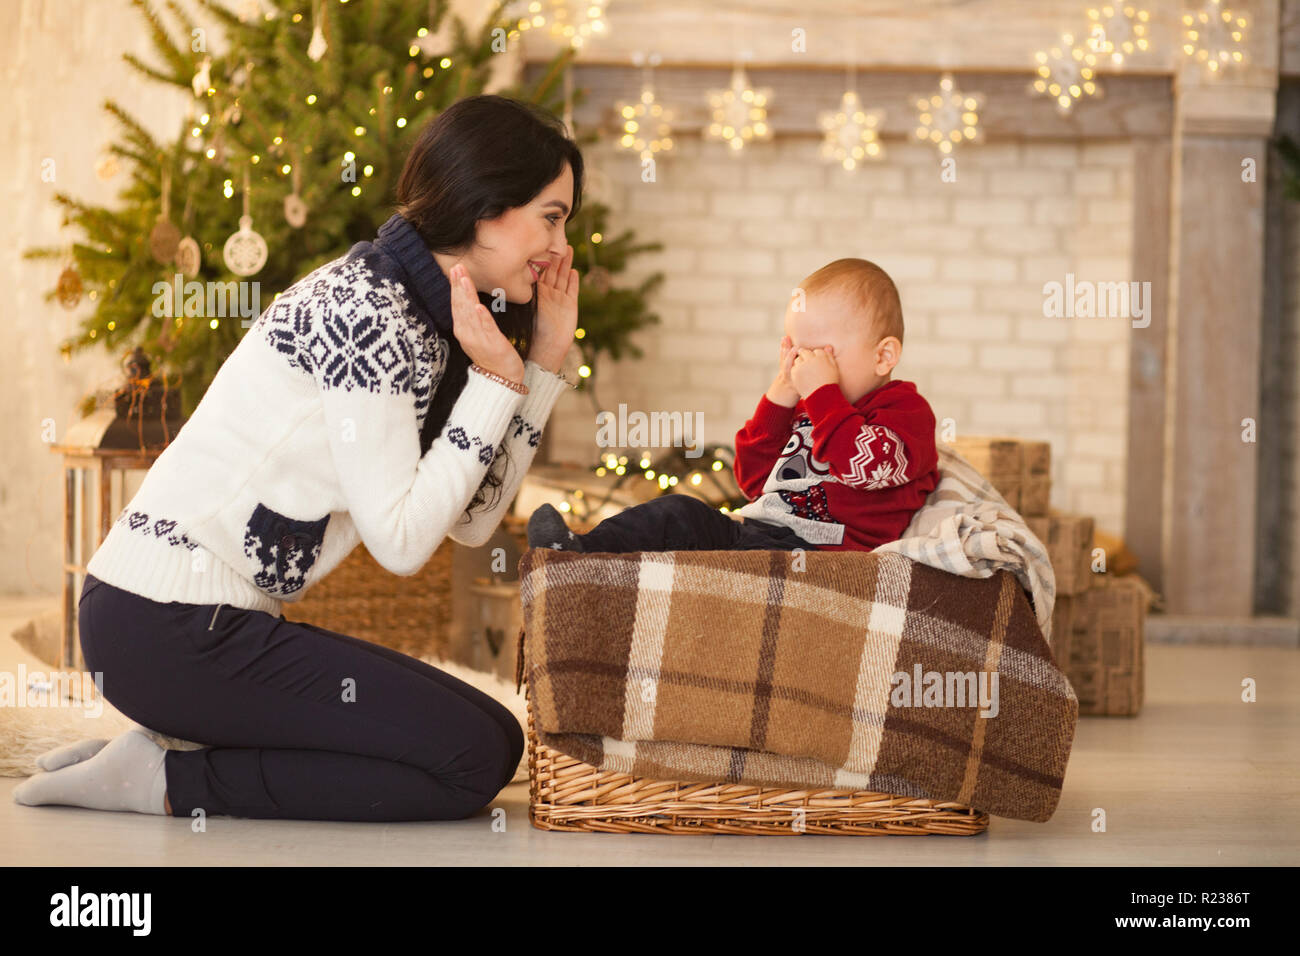 Mother comforts her little crying son on background of the Christmas tree and festive garlands. Stock Photo